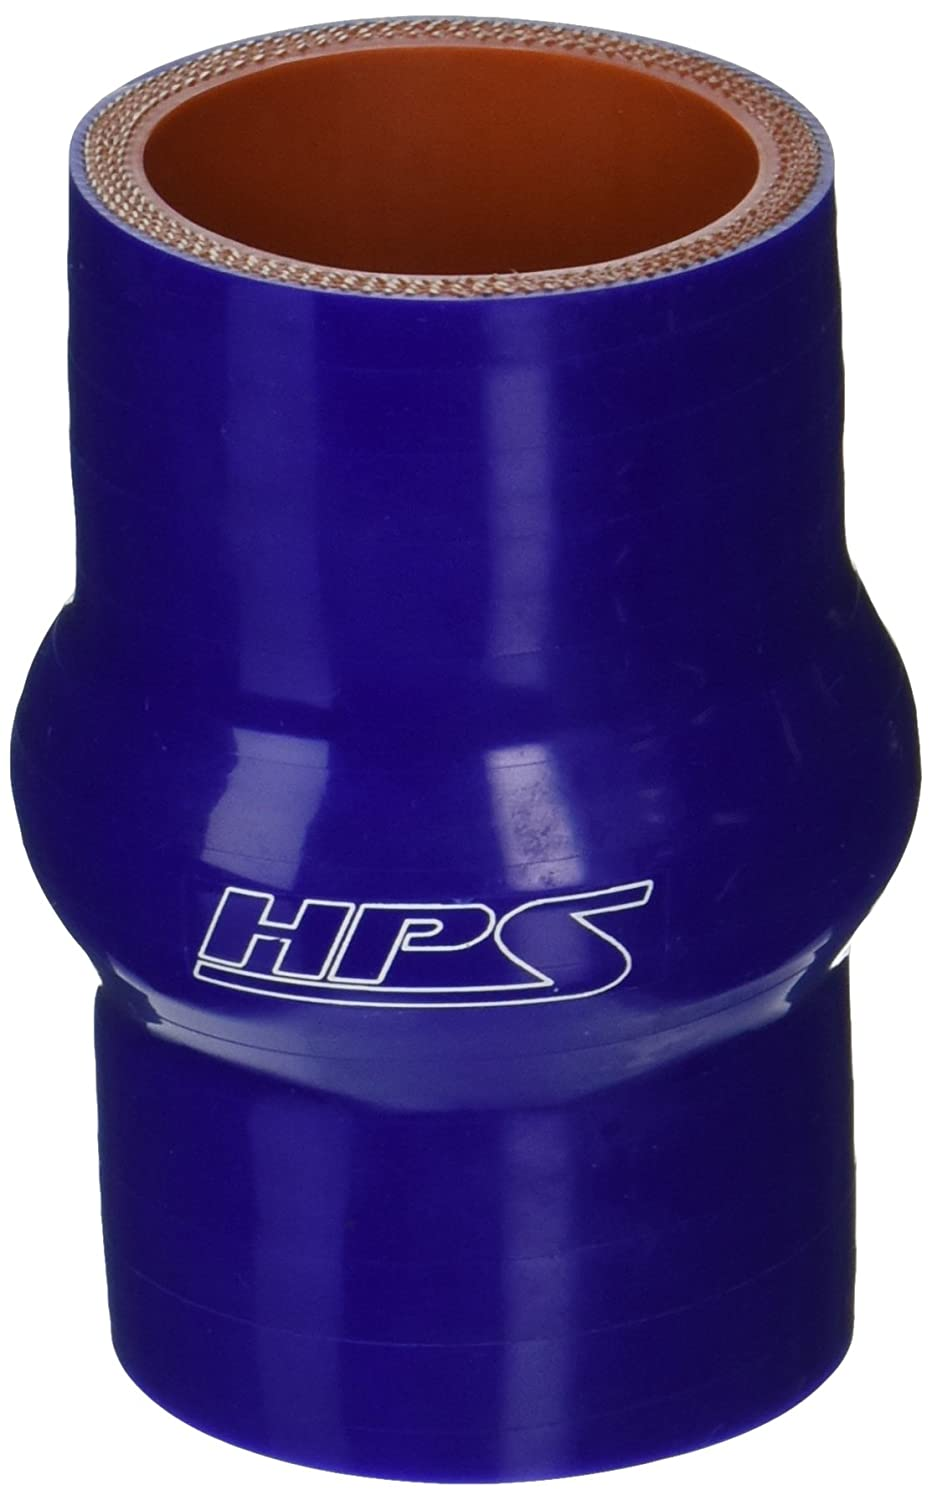 HPS HTSHC-150-BLUE Silicone High Temperature 4-ply Reinforced Straight Hump Coupler Hose, 100 PSI Maximum Pressure, 3' Length, 1-1/2' ID, Blue 3 Length 1-1/2 ID HPS Silicone Hoses